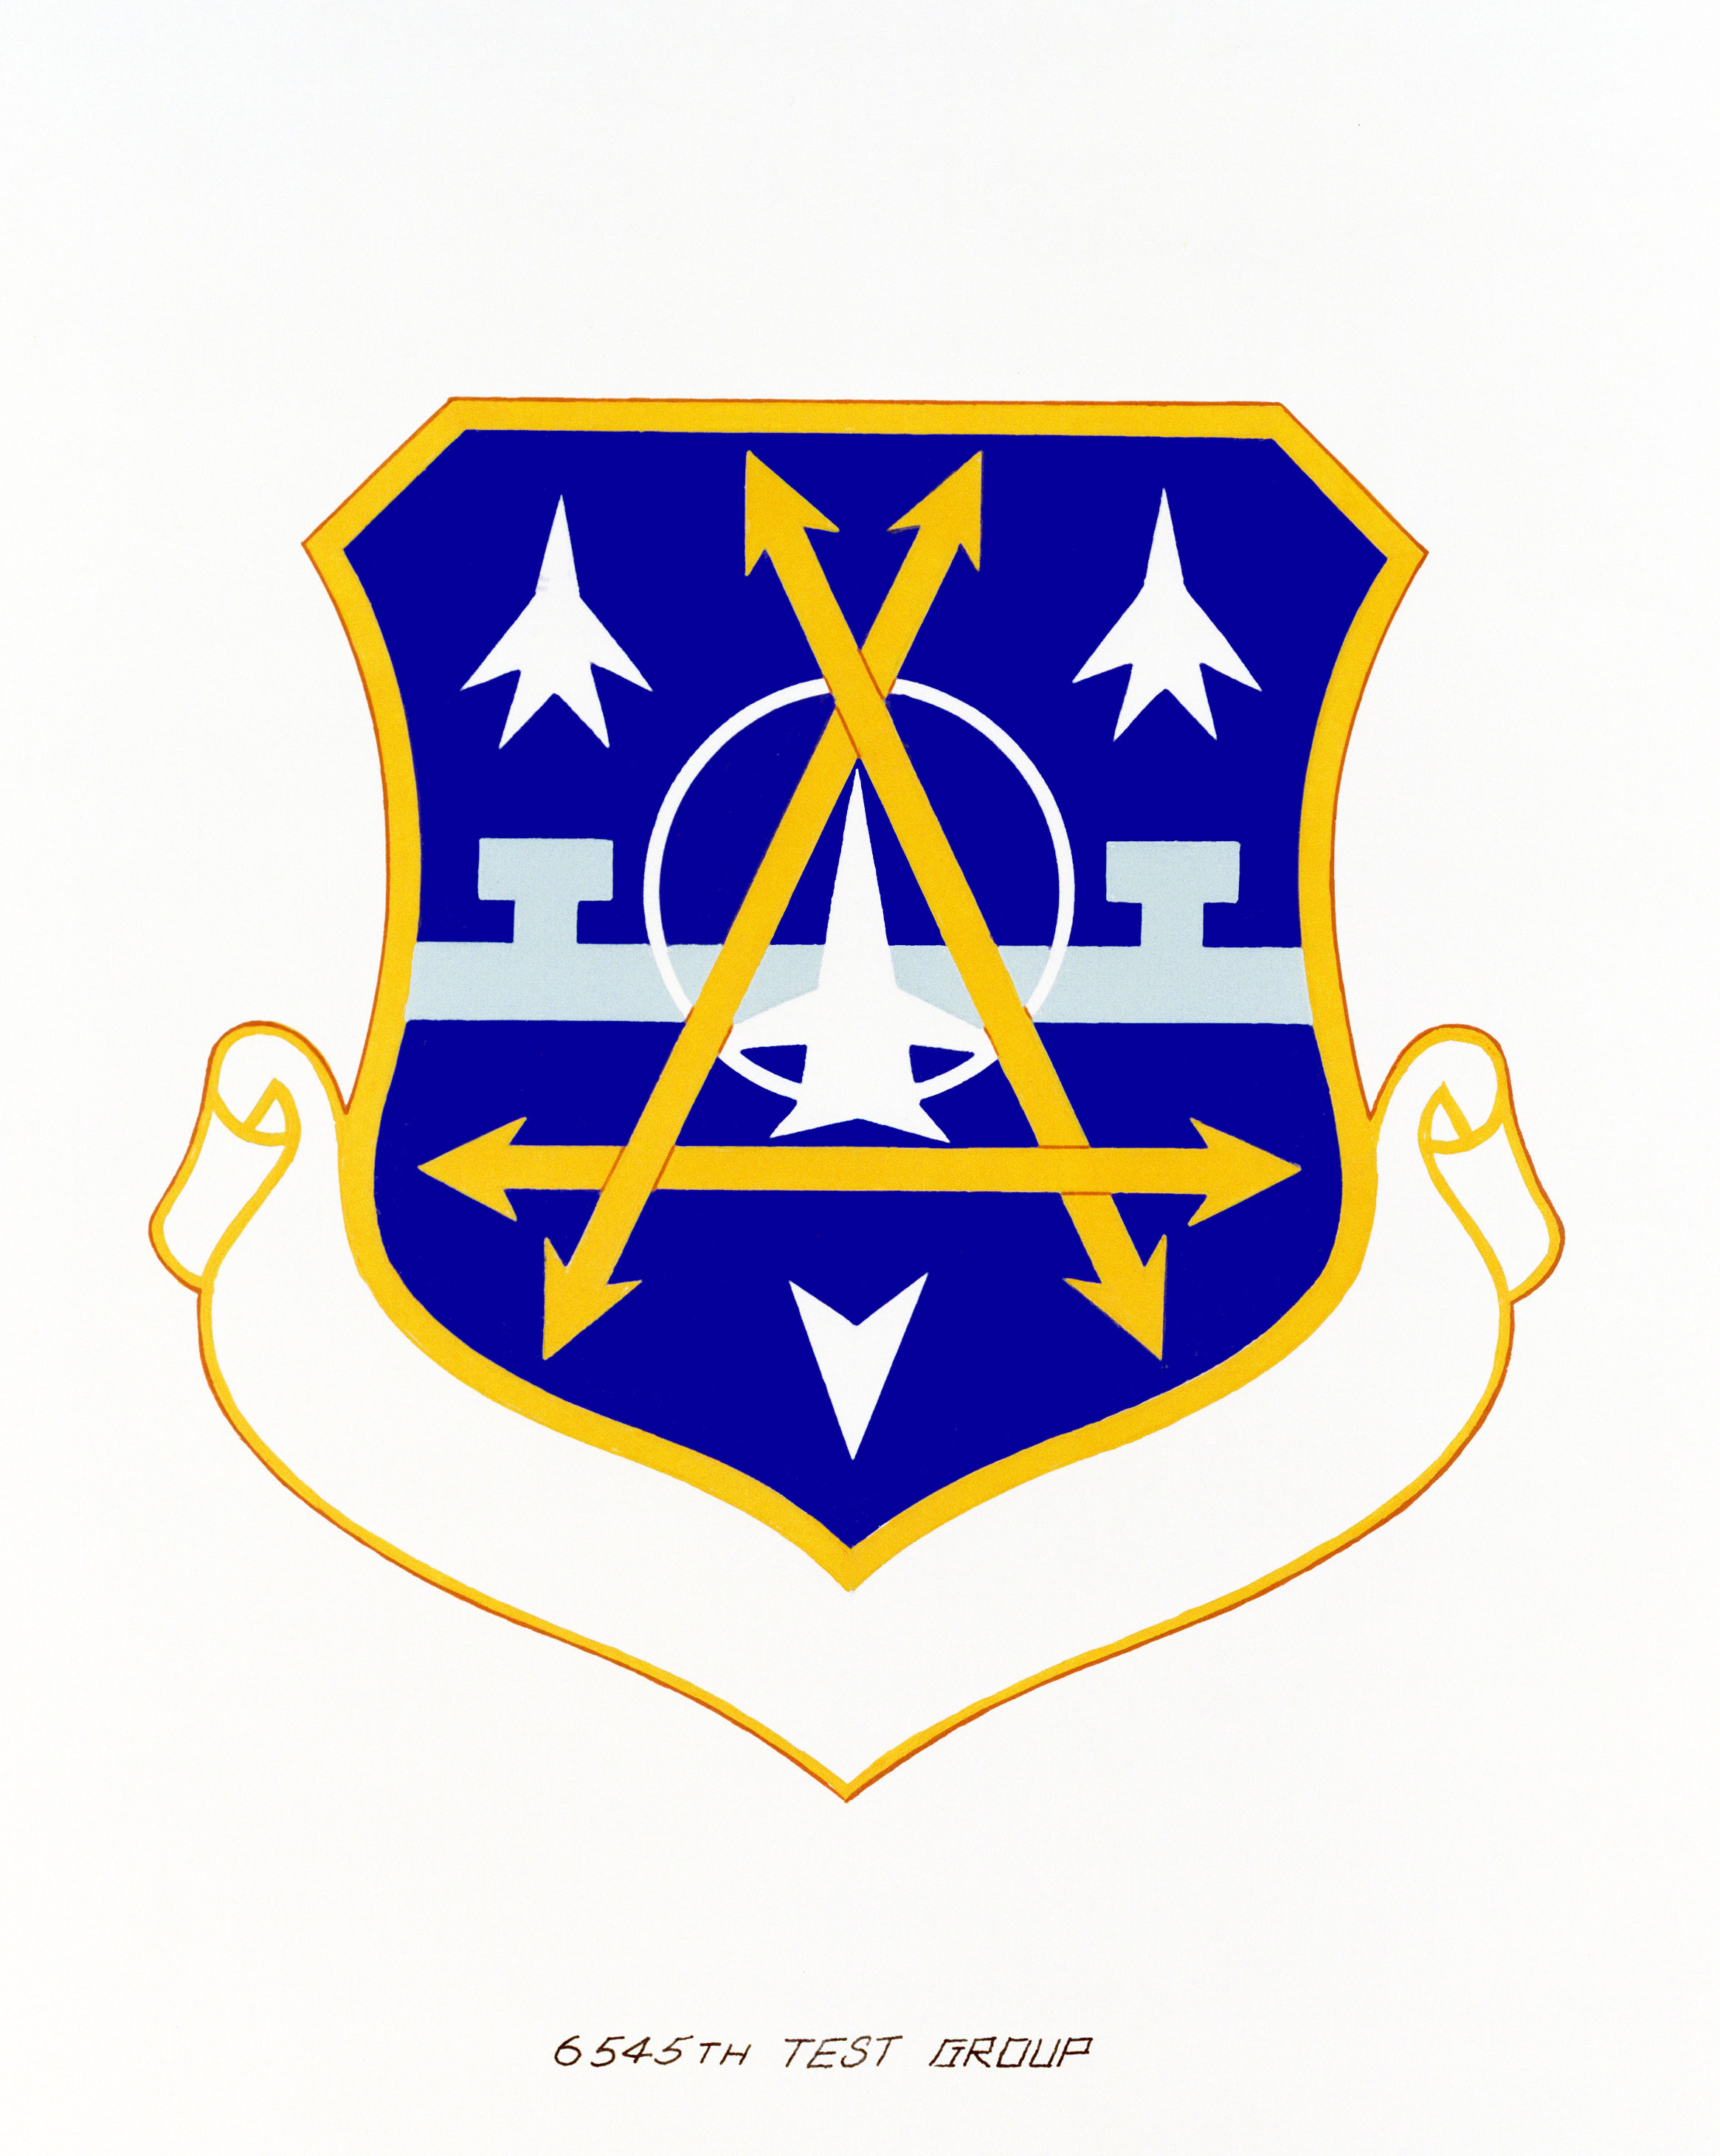 Approved insignia for: 2545th Test Group